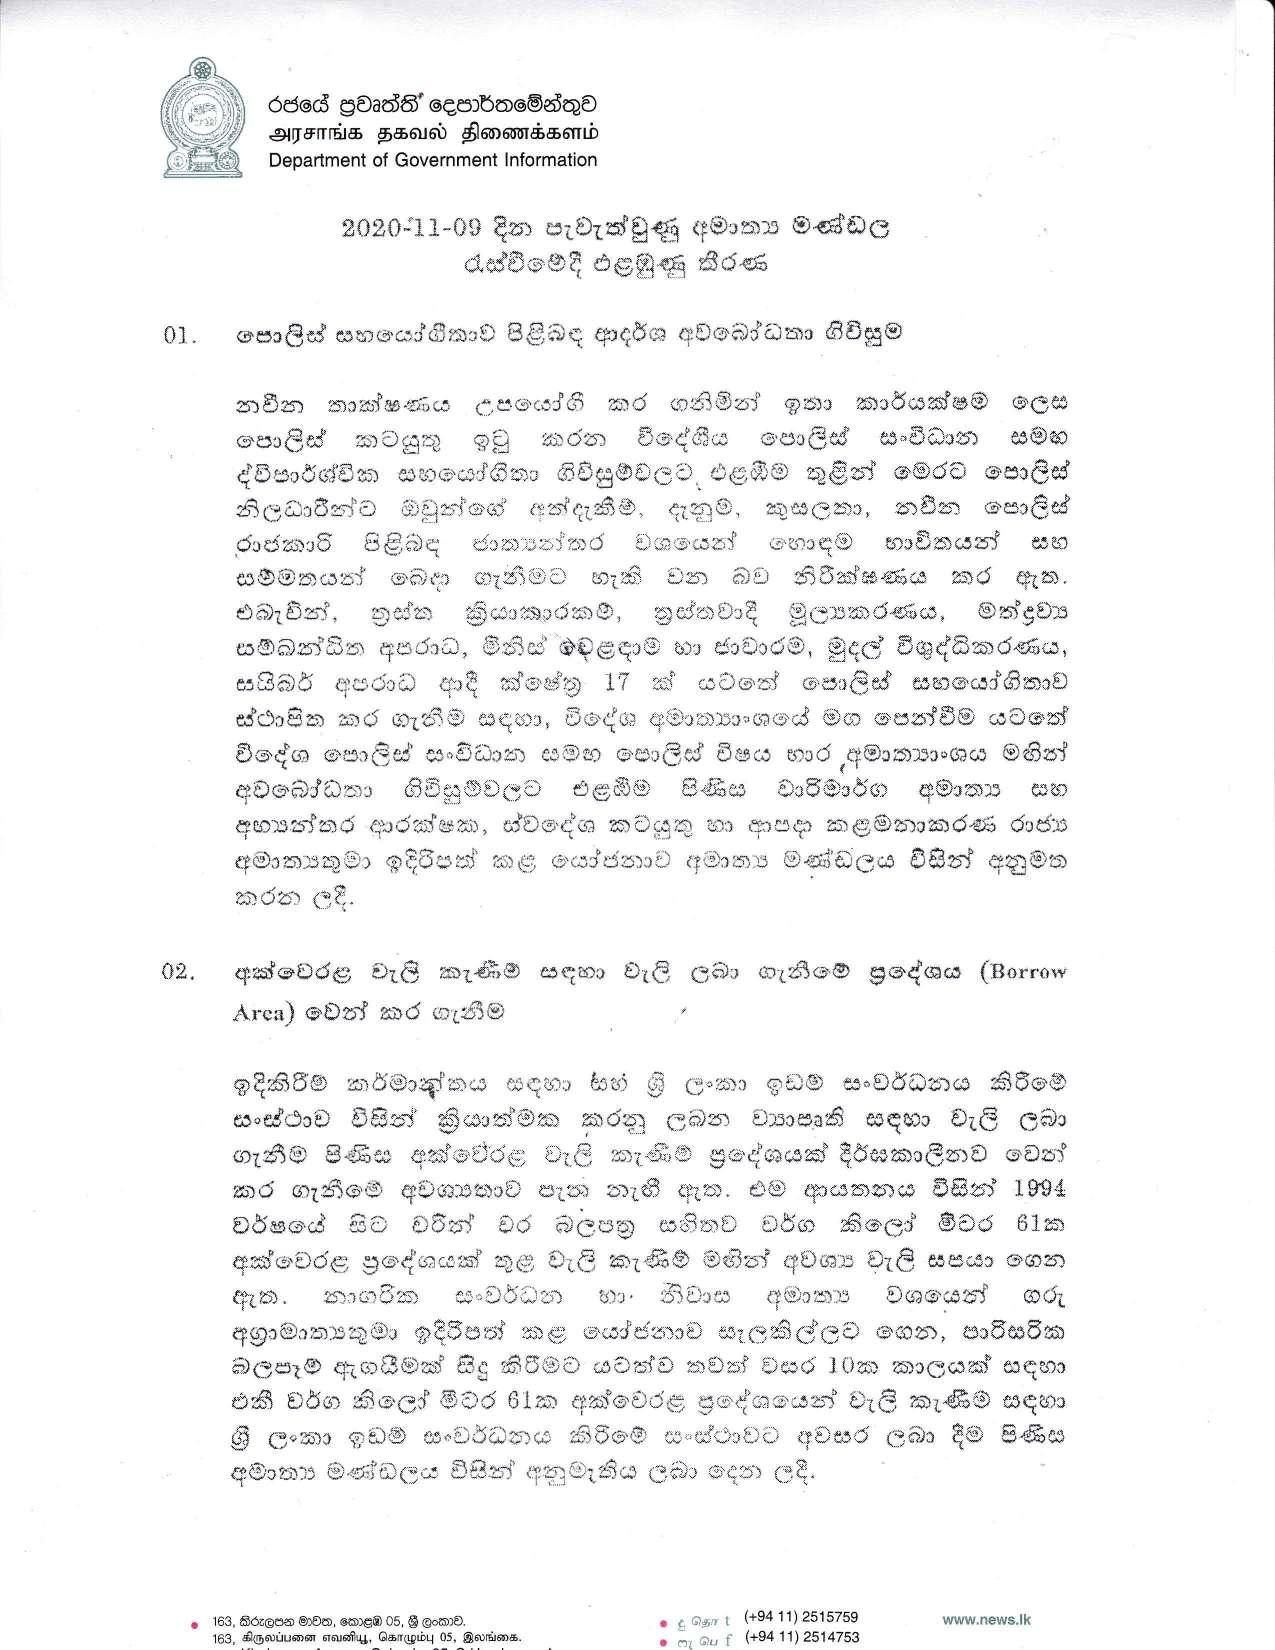 Cabinet Decision on 09.11.2020 Sinhala page 001